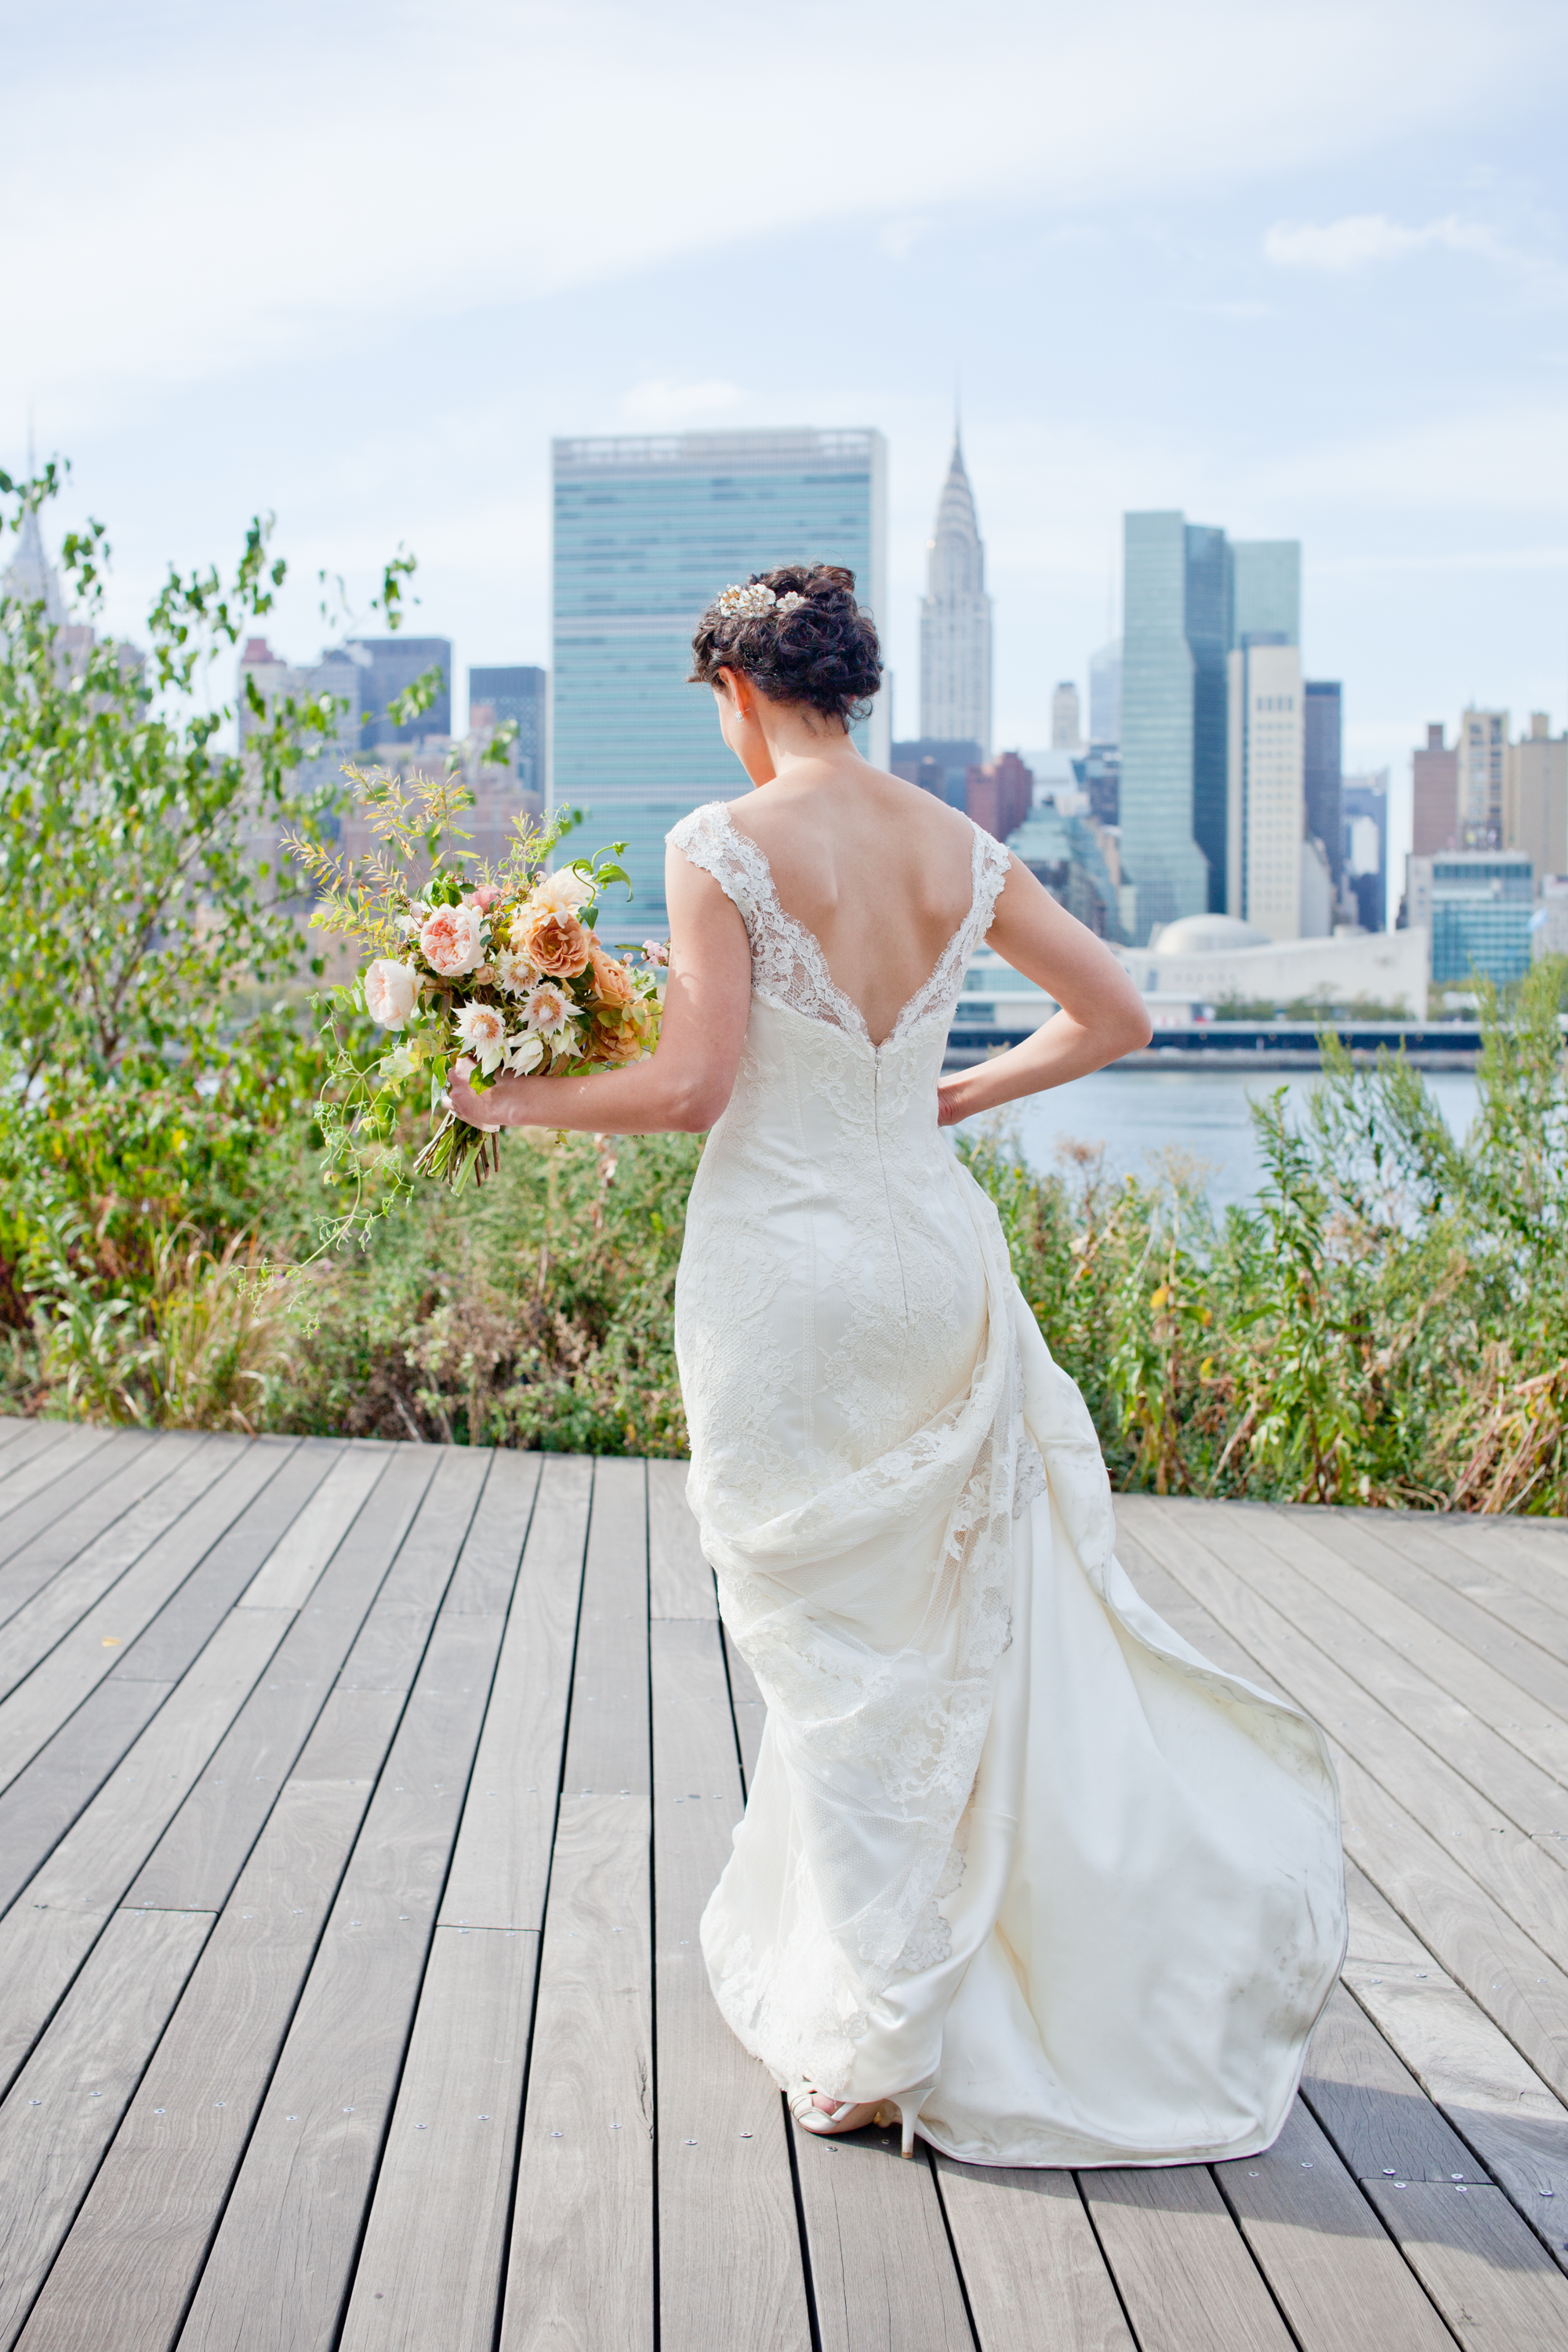 053_CarlyGaebe_SteadfastStudio_WeddingPhotography_Readyluck_NewYorkCity_LongIslandCity_Williamsburg_GantryStatePark_EastRiver_Waterfront__Fall_AltaModaBridal_Bouquet.jpg